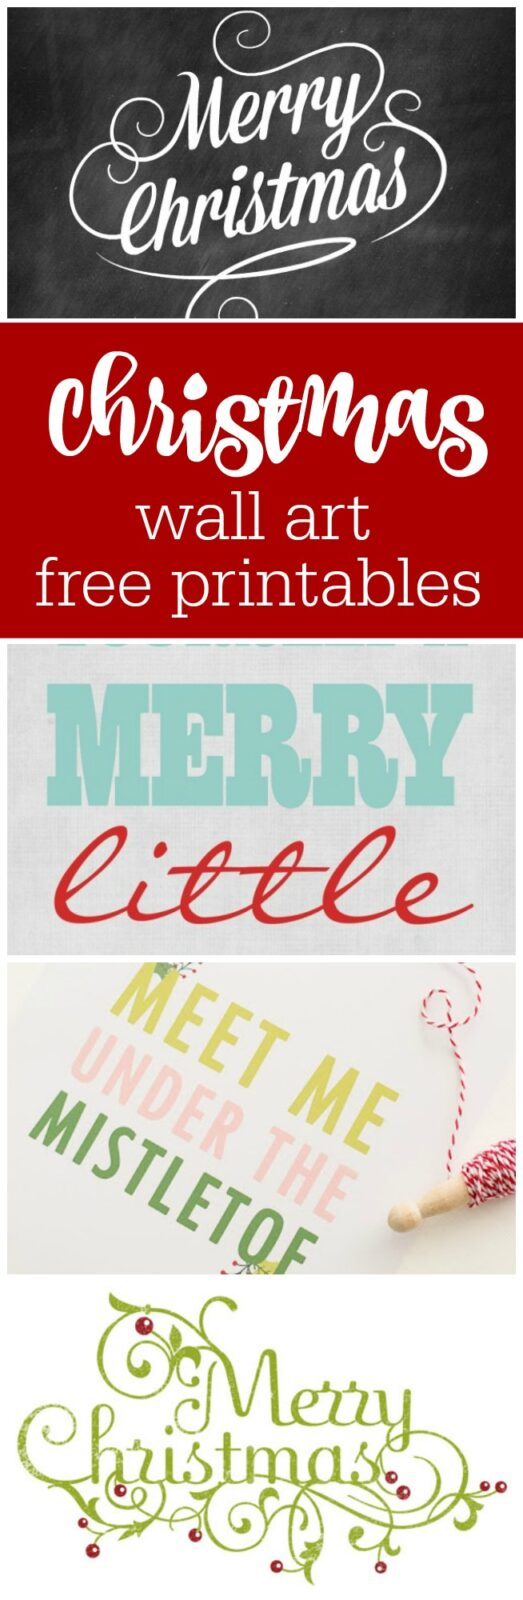 Christmas wall art free printables curated by The Party Teacher